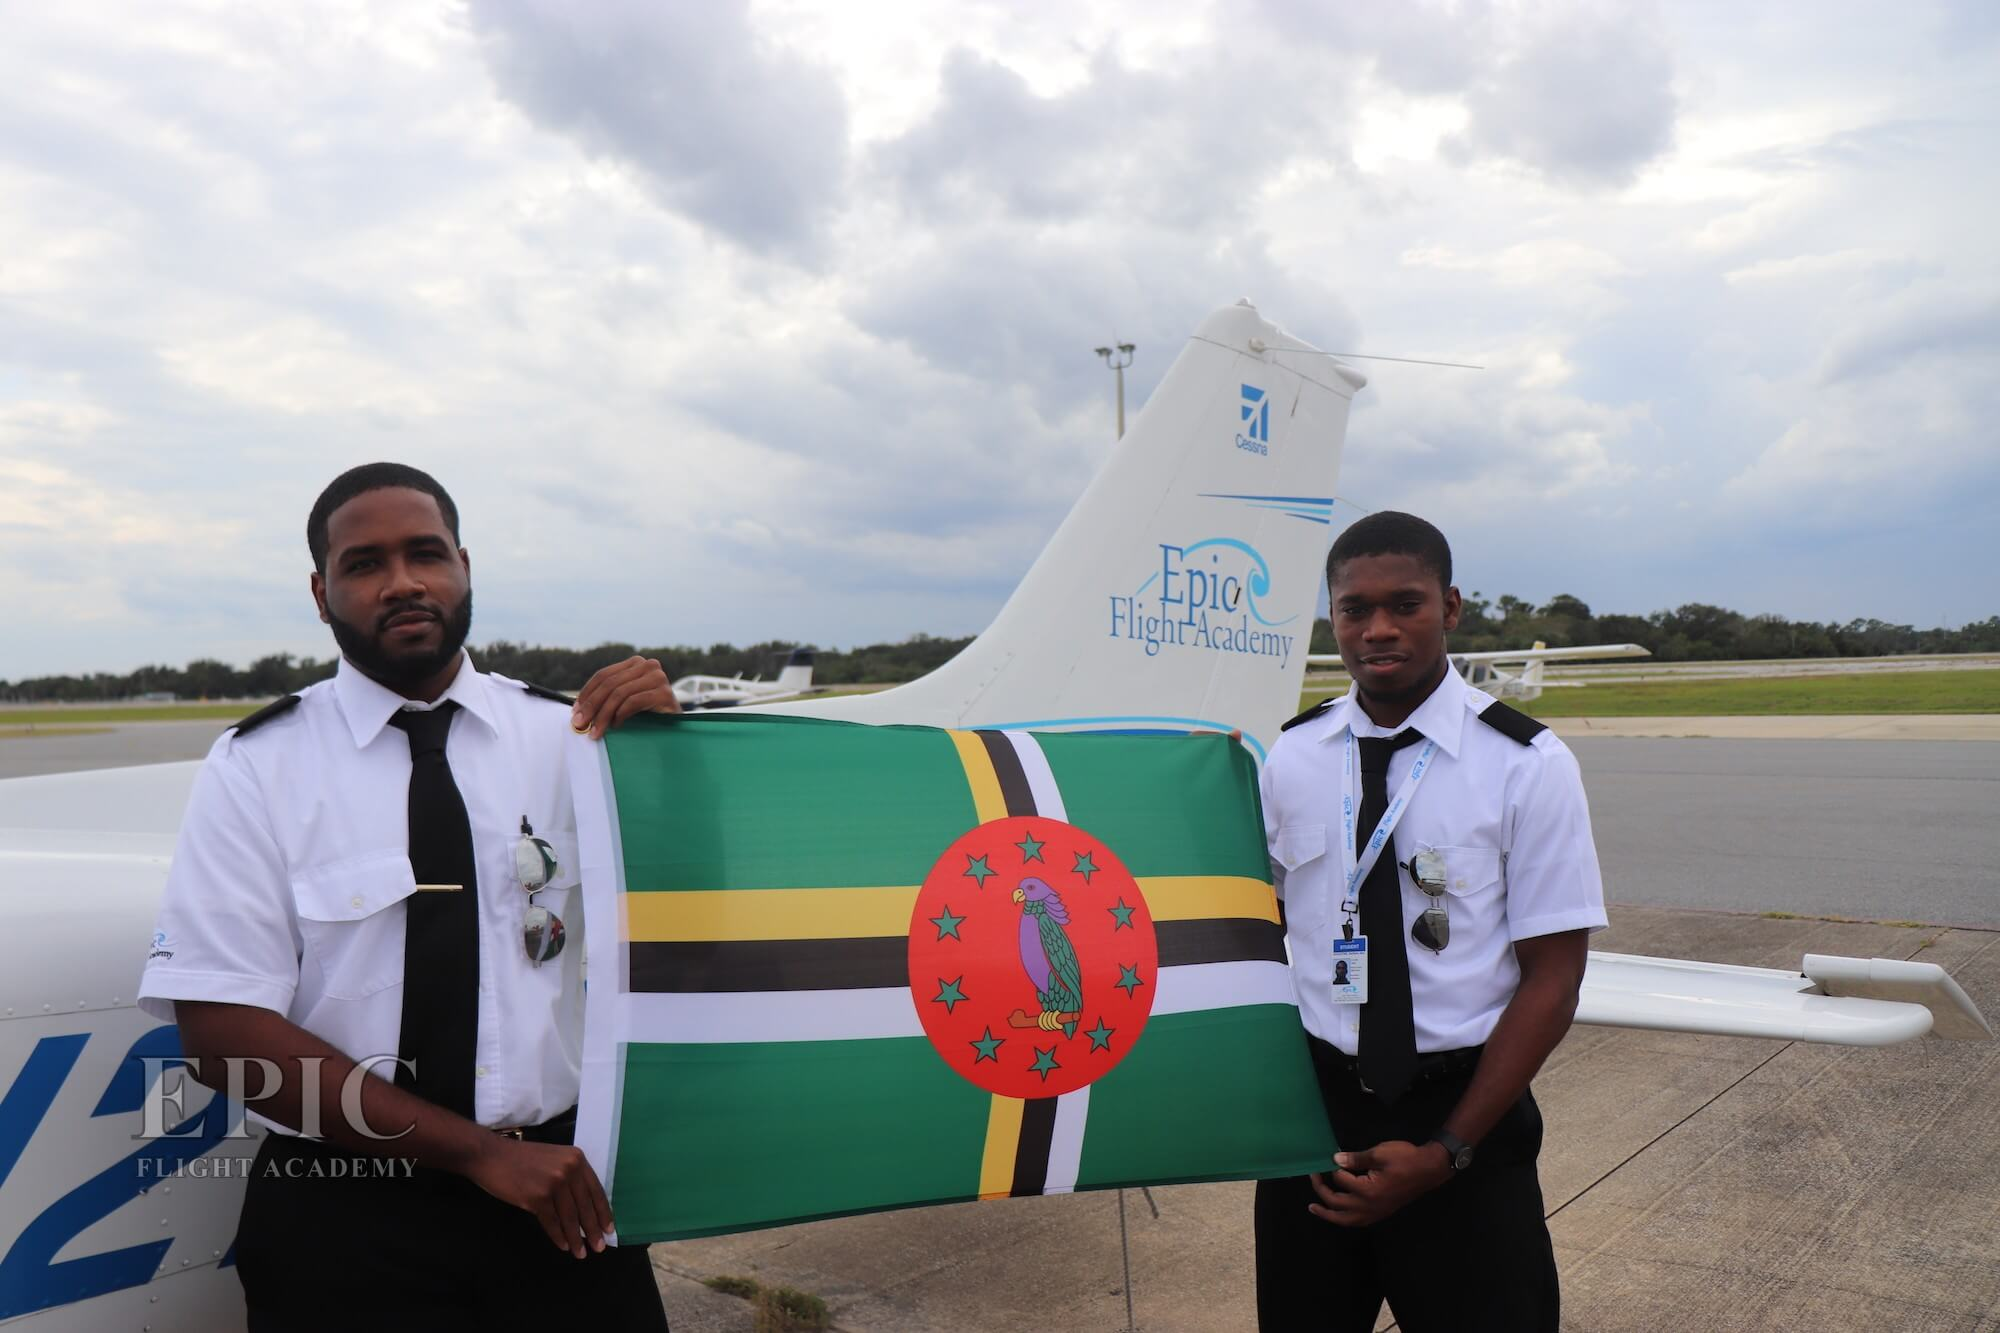 Epic Flight Academy students from Dominica